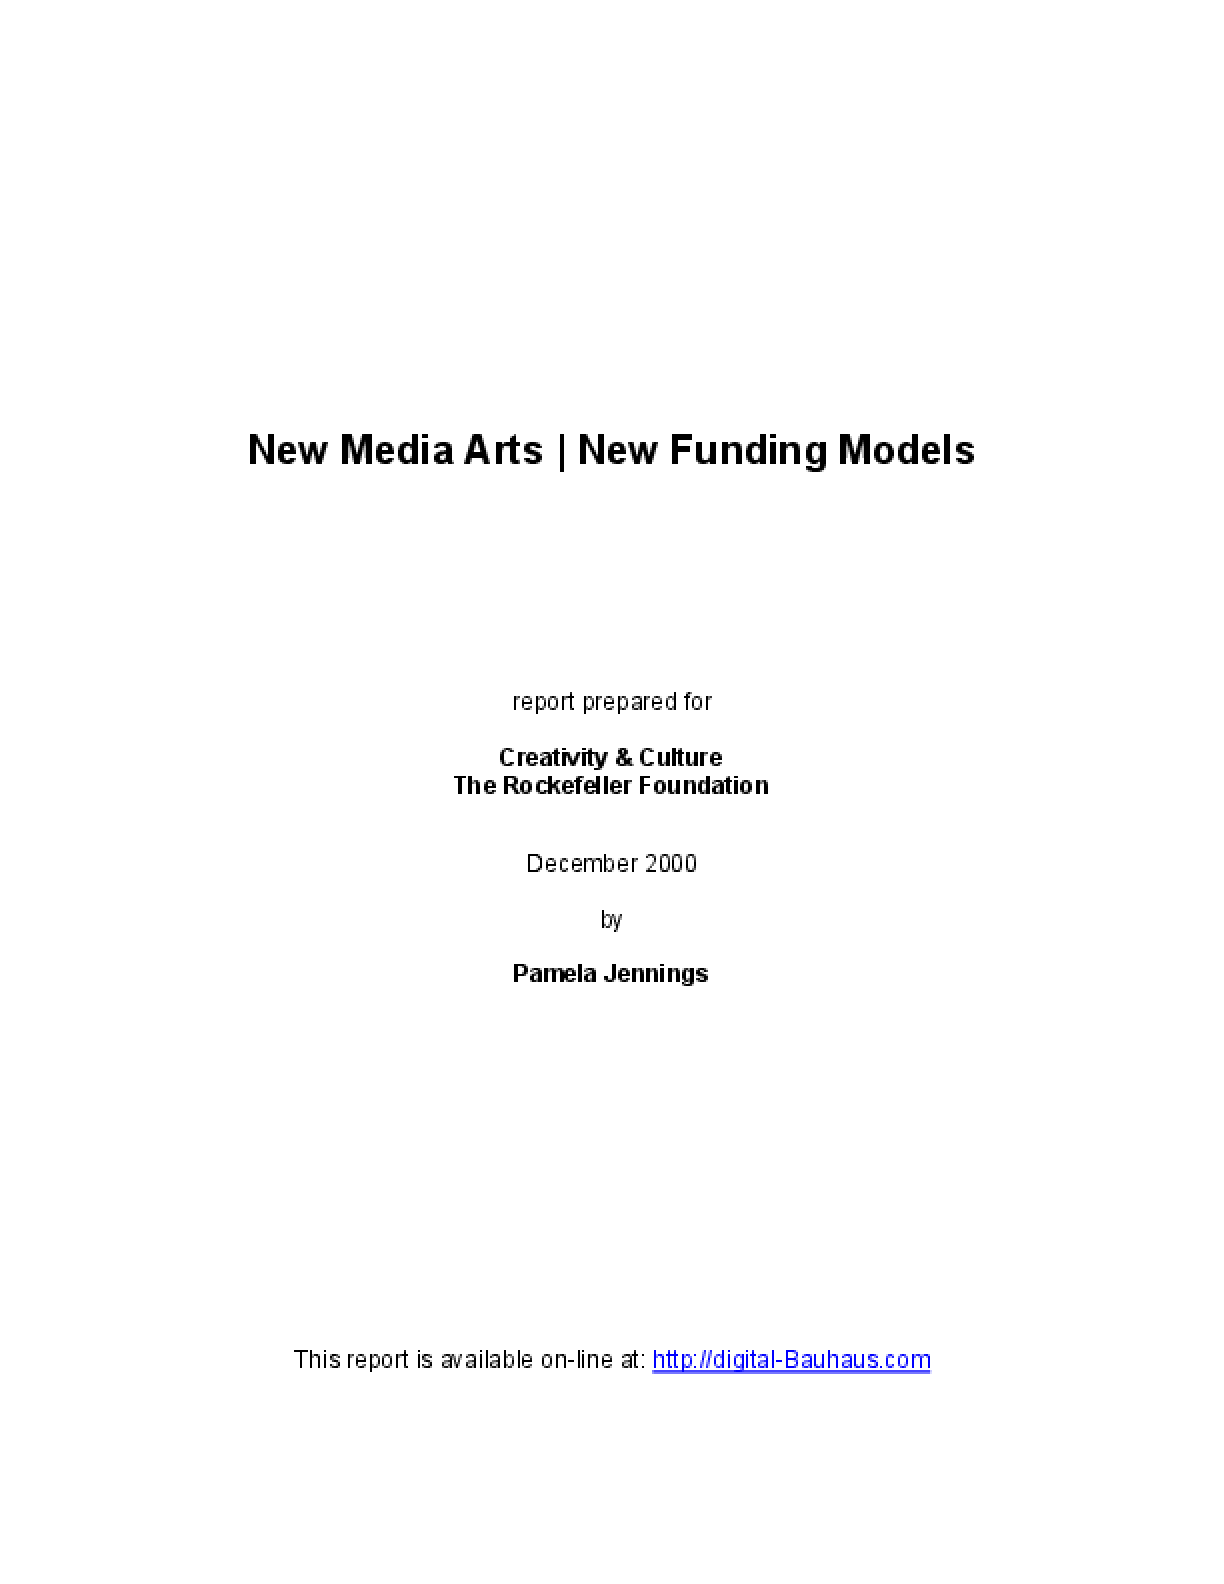 New Media Art/ New Funding Models